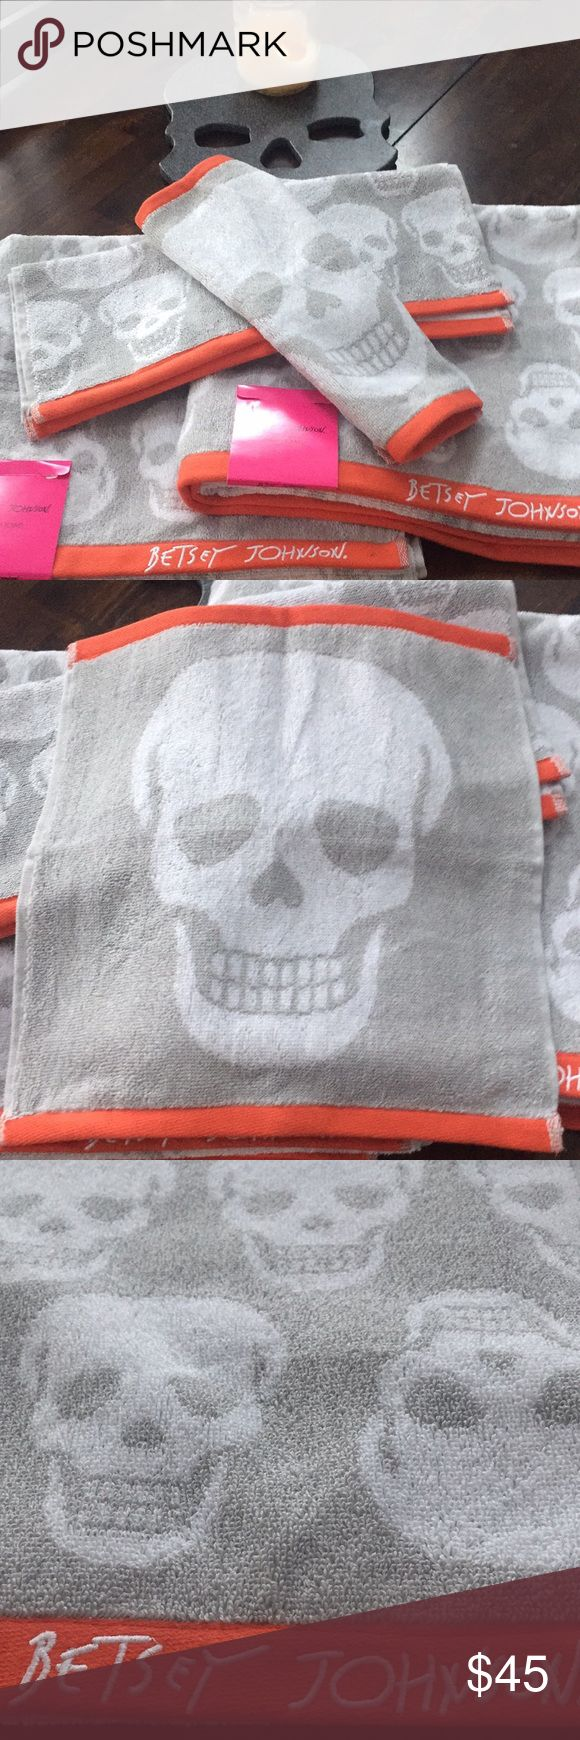 ☠️💋Betsey Johnson bath towel set❤️ NWT Betsey Johnson skull bath set. Comes with two bath one hand towel  and one wash cloth. Grey and white with orange border. Very cool towels!☠️💋💕 Betsey Johnson Other